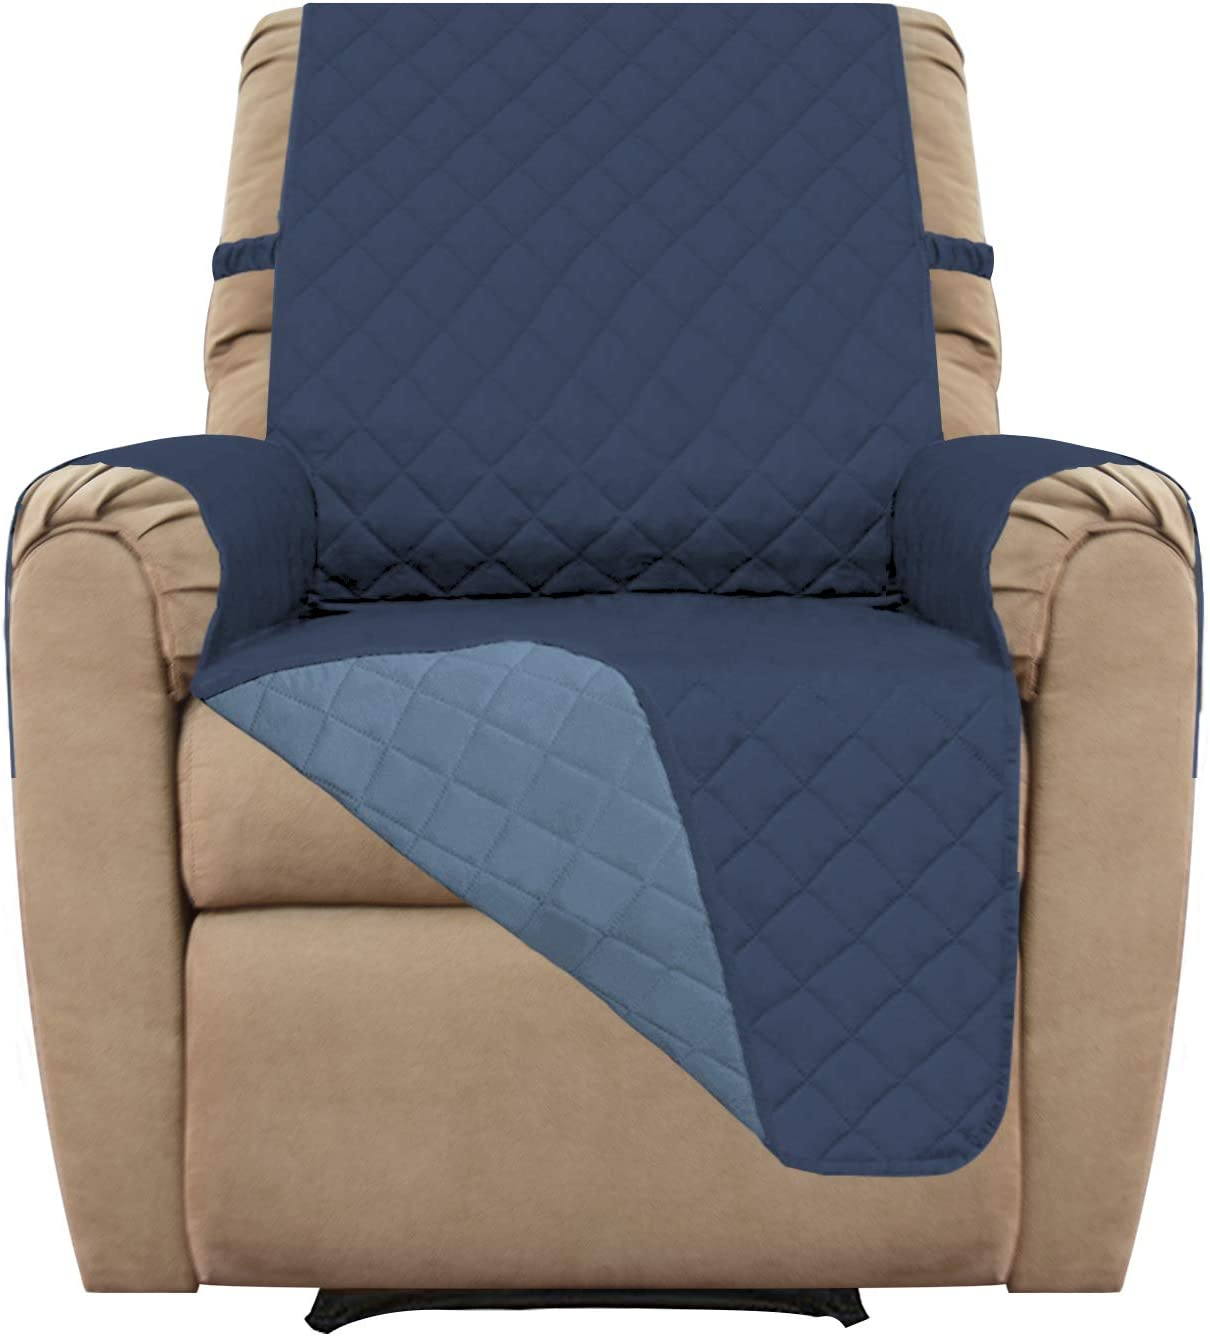 Easy-Going Recliner Cover Sofa Slipcover Reversible Sofa Cover Furniture Protector Couch Cover Water Resistant Elastic Straps Pets Kids Children Dog Cat (Recliner, Dark Blue/Light Blue)